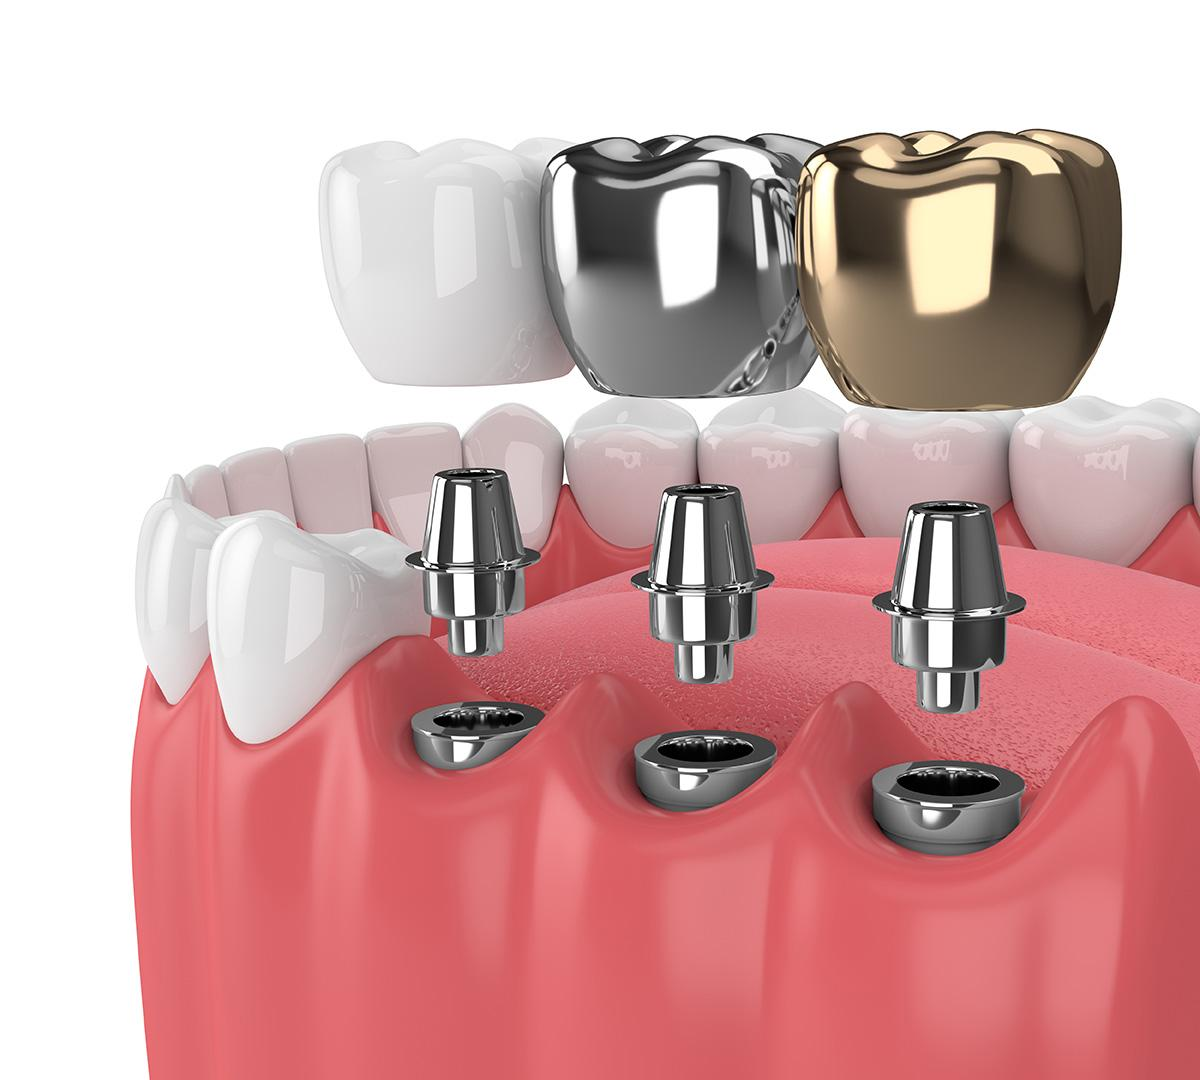 What are the best types of dental implants? - Healthy Smile Dental